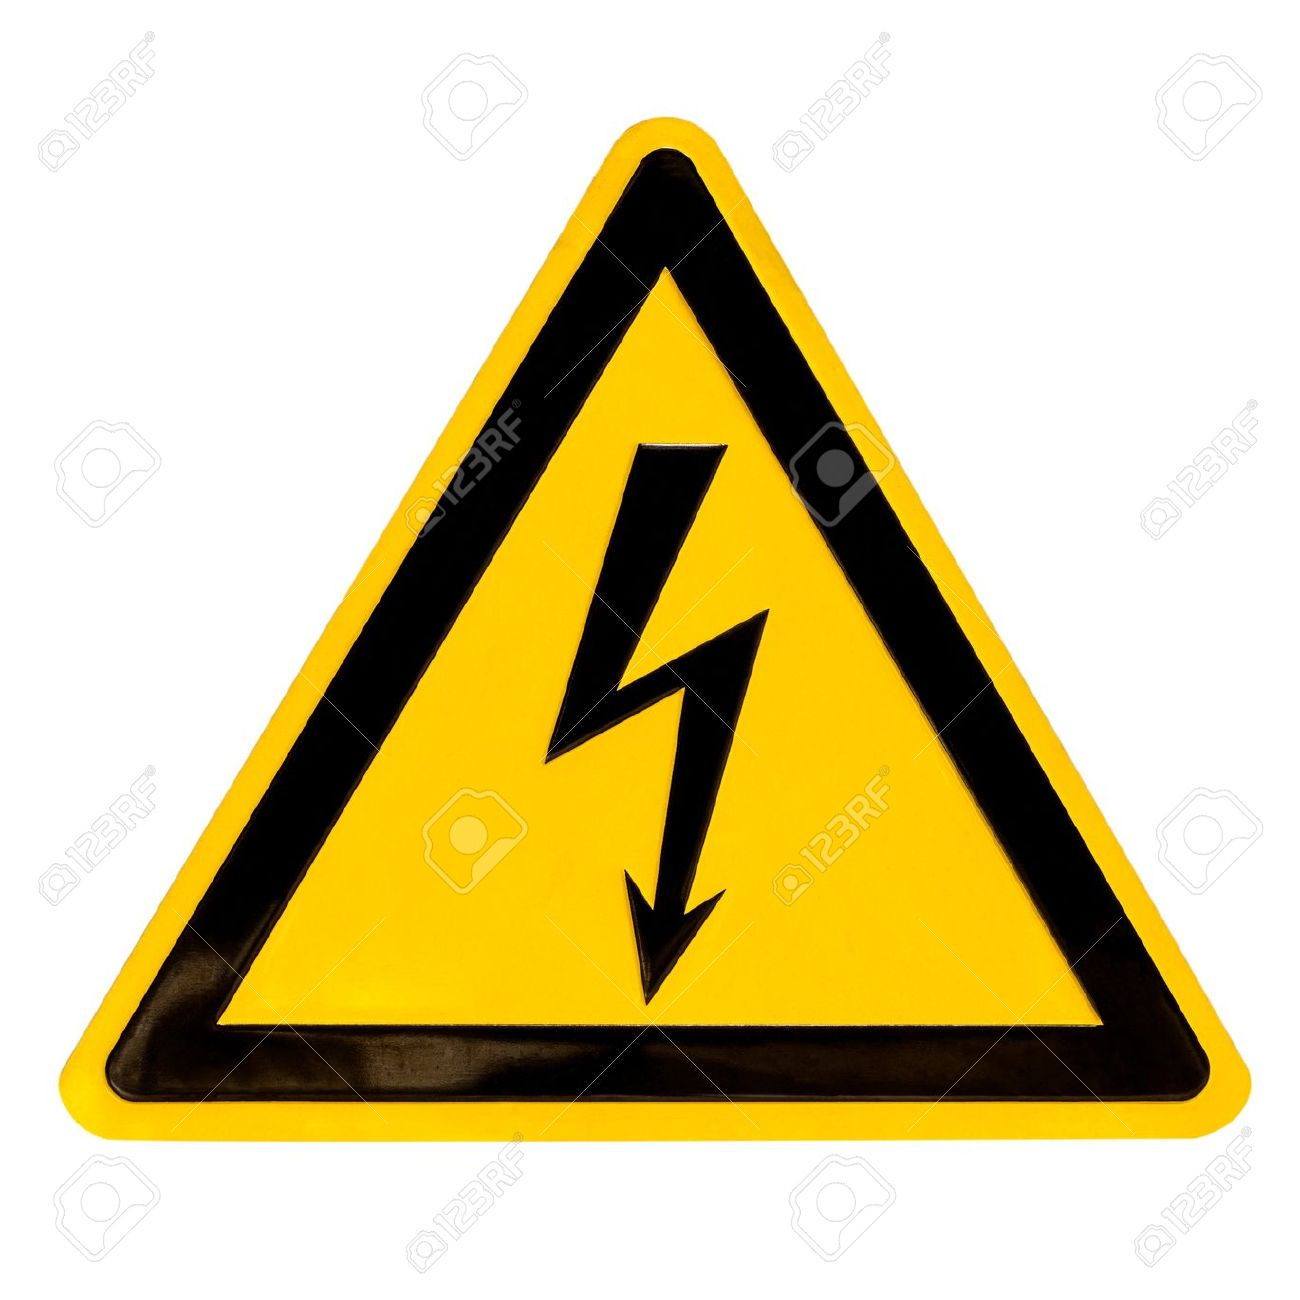 Real metal high voltage danger sign isolated on white Stock Photo - 8931320